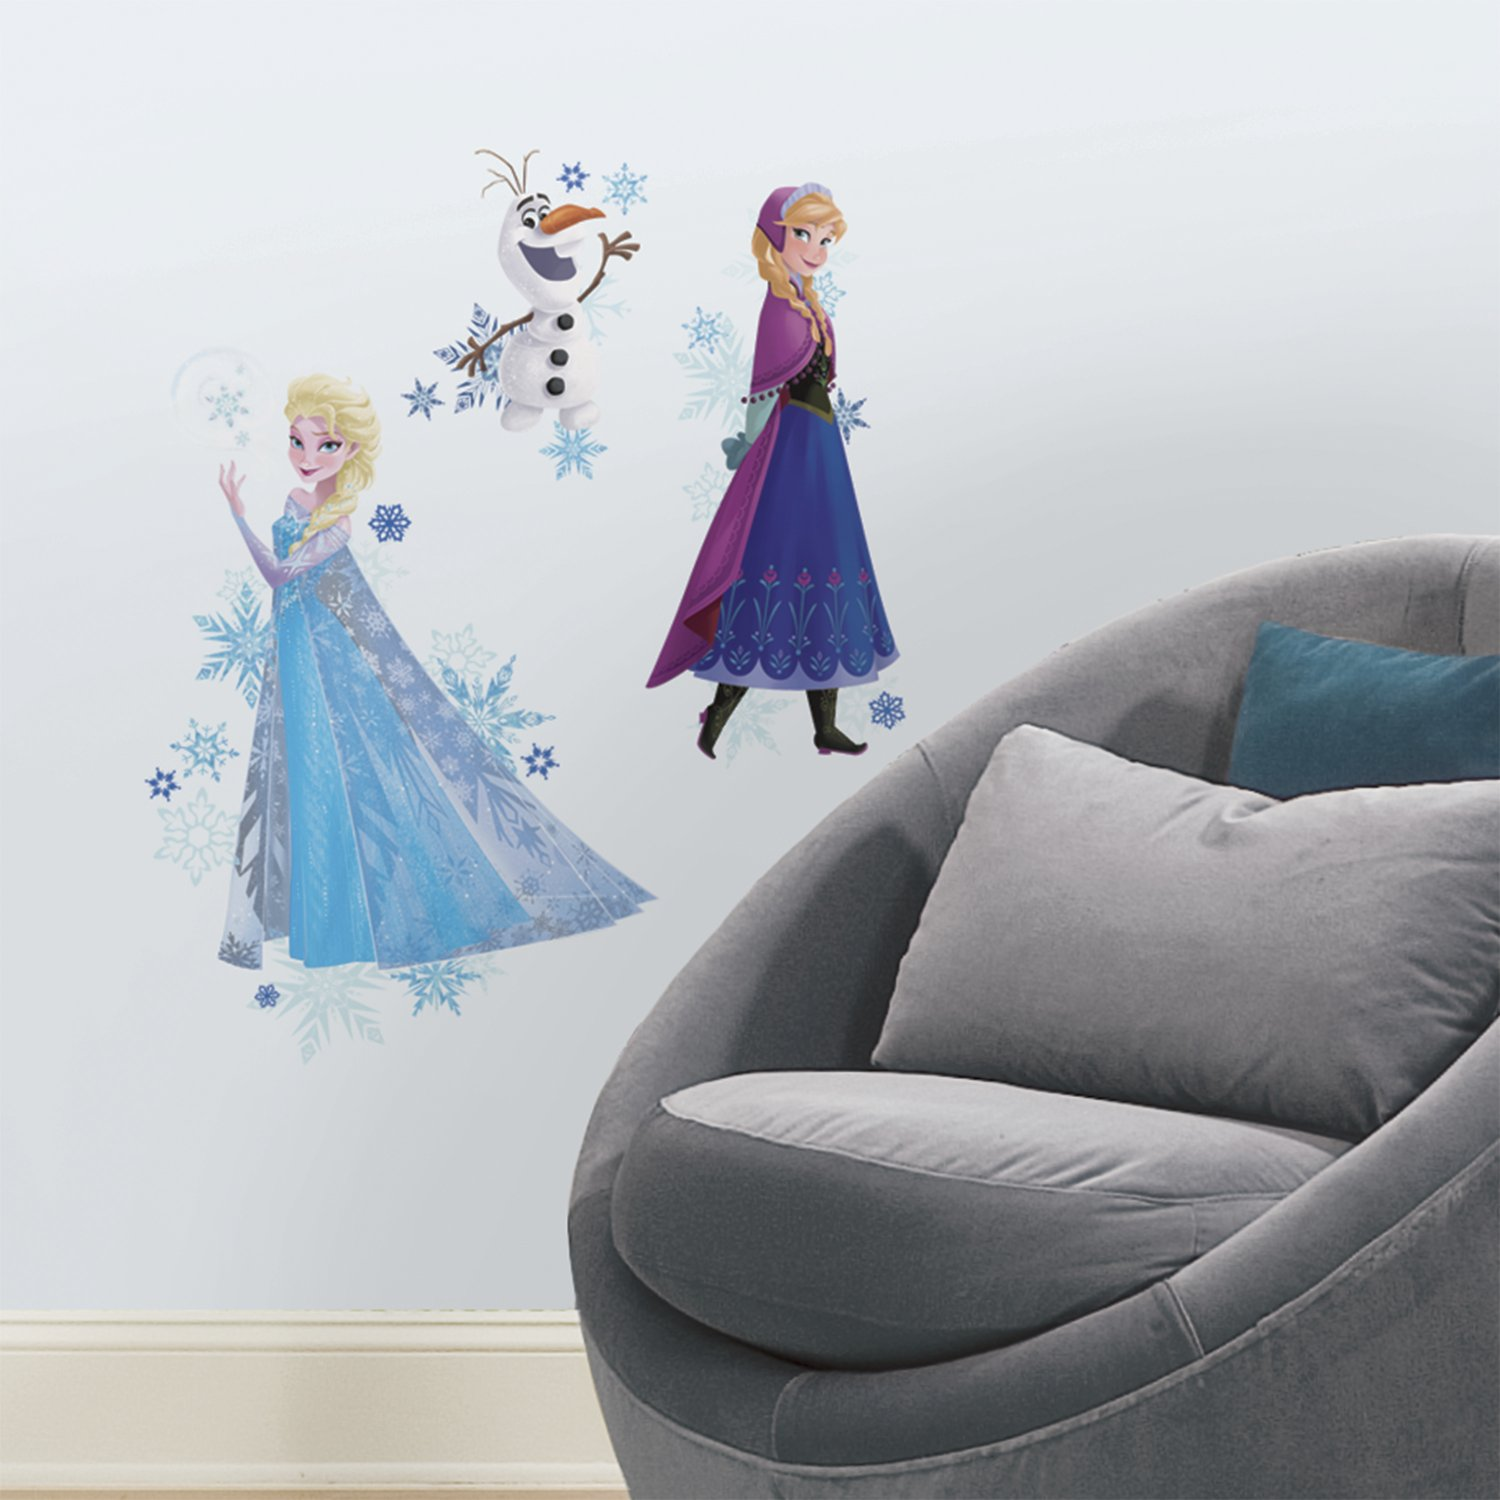 RoomMates Disney Frozen Anna, Elsa, And Olaf Giant Wall Decals